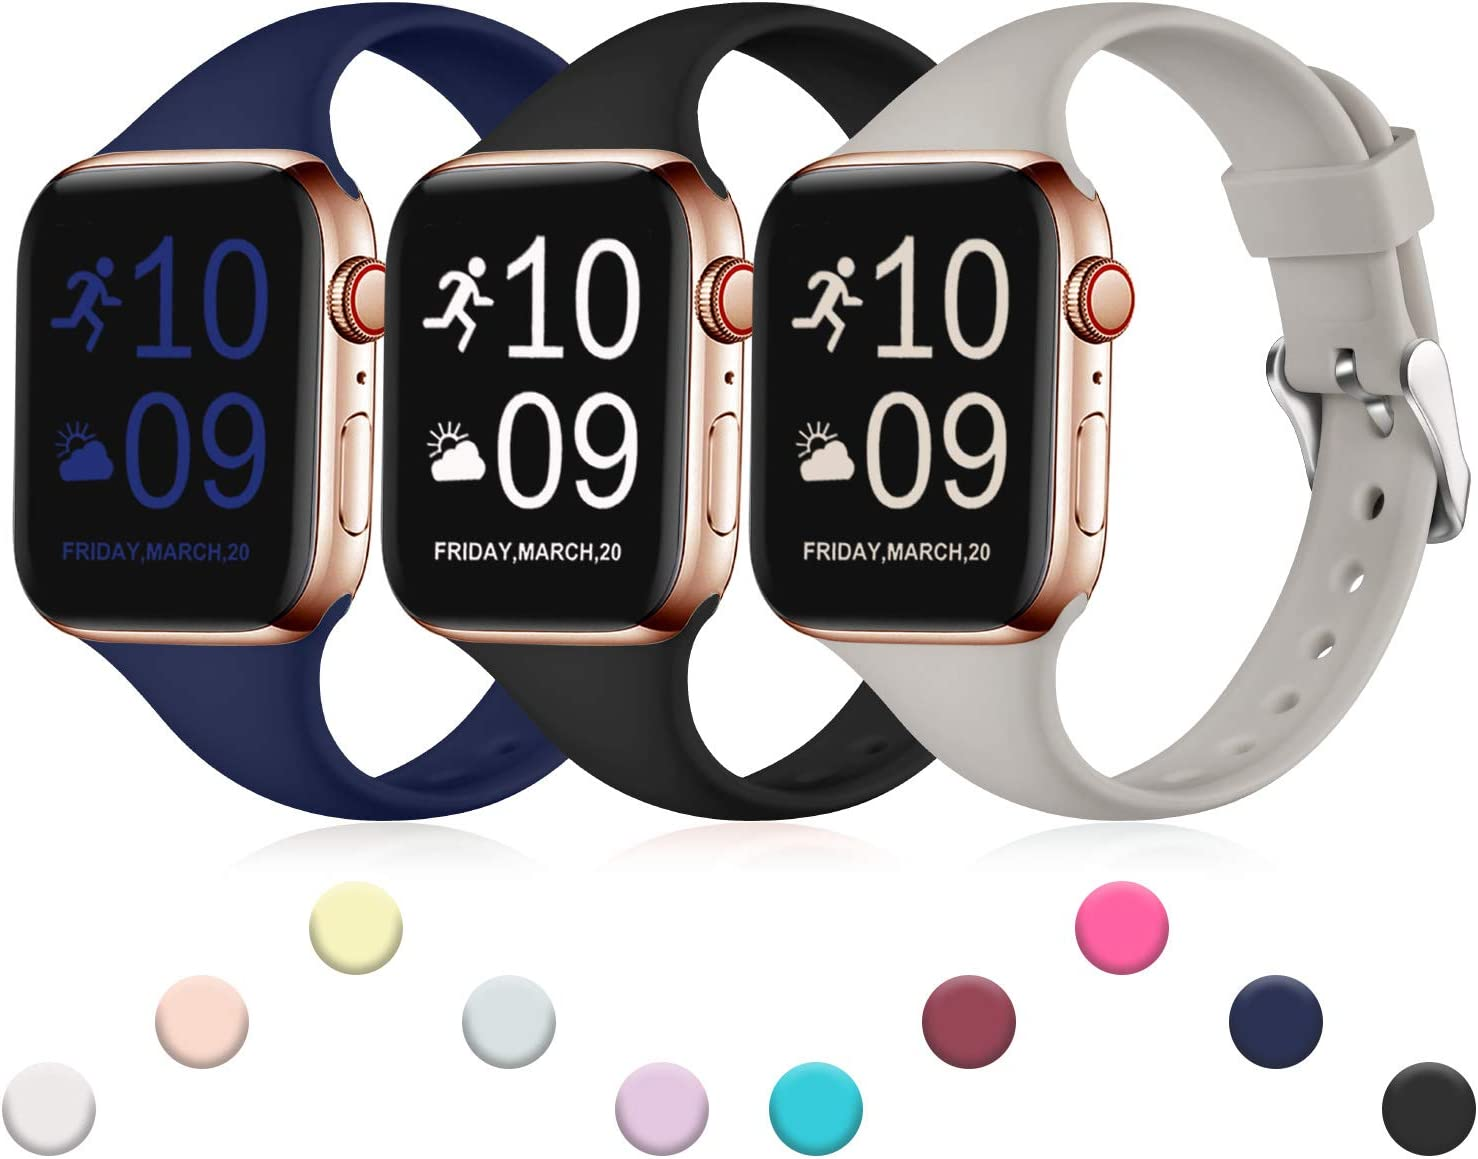 Henva Band Compatible with iWatch 40mm 38mm, Waterproof Soft Slim Band Compatible for Apple Watch SE Series 6/5/4/3/2/1, 3 Pack, Black/Navy Blue/Gray, S/M